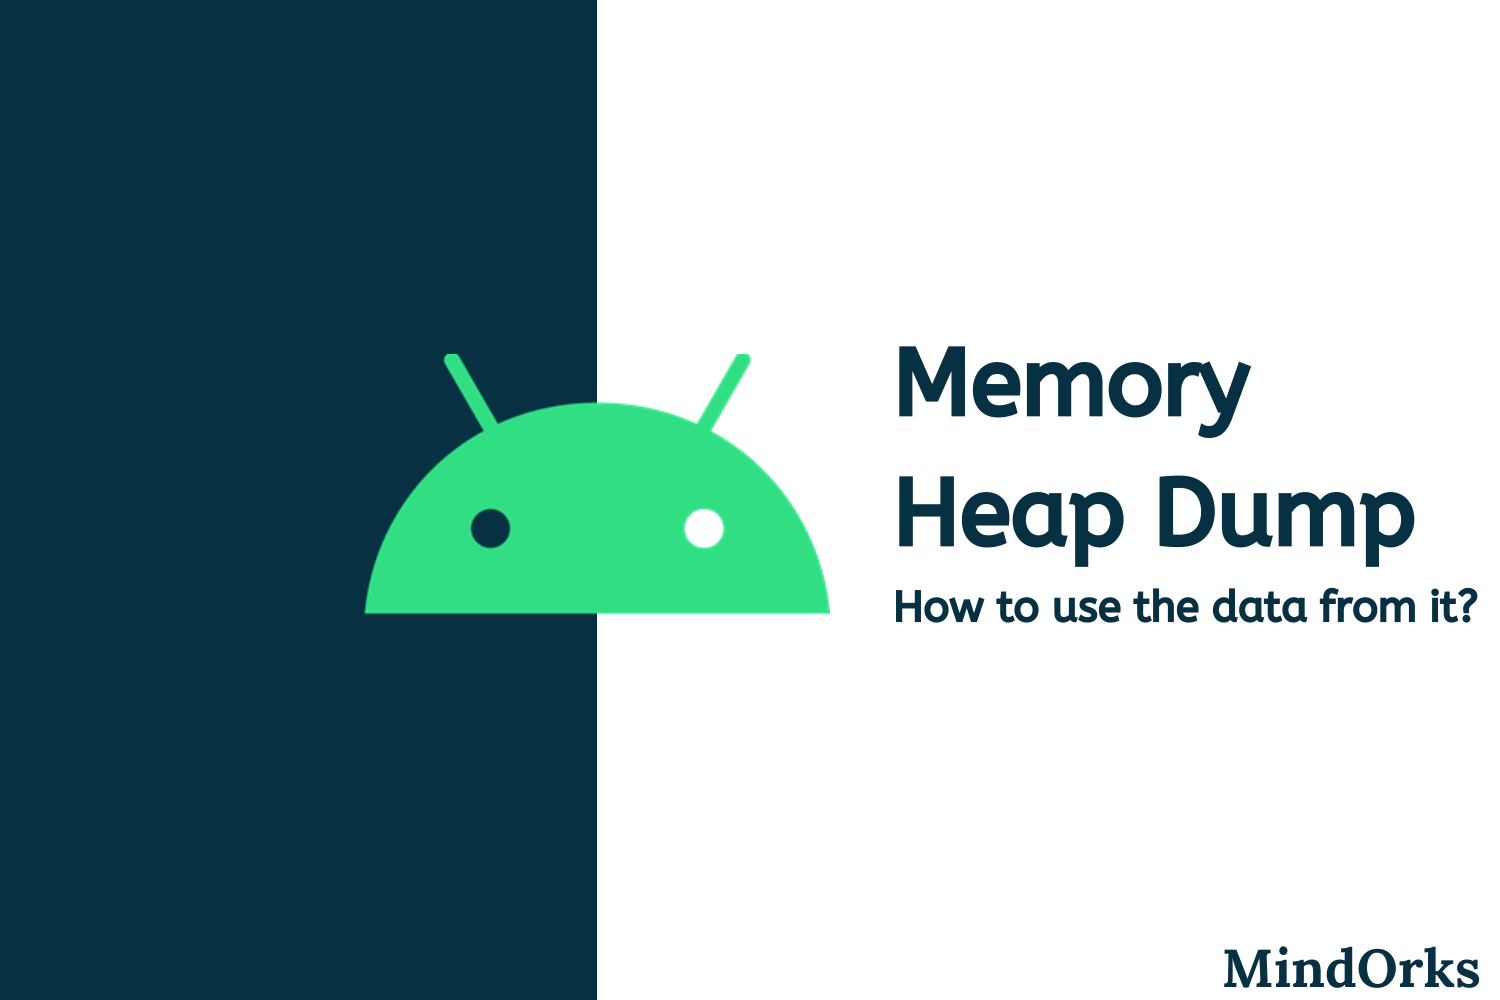 How to use Memory Heap Dumps data?